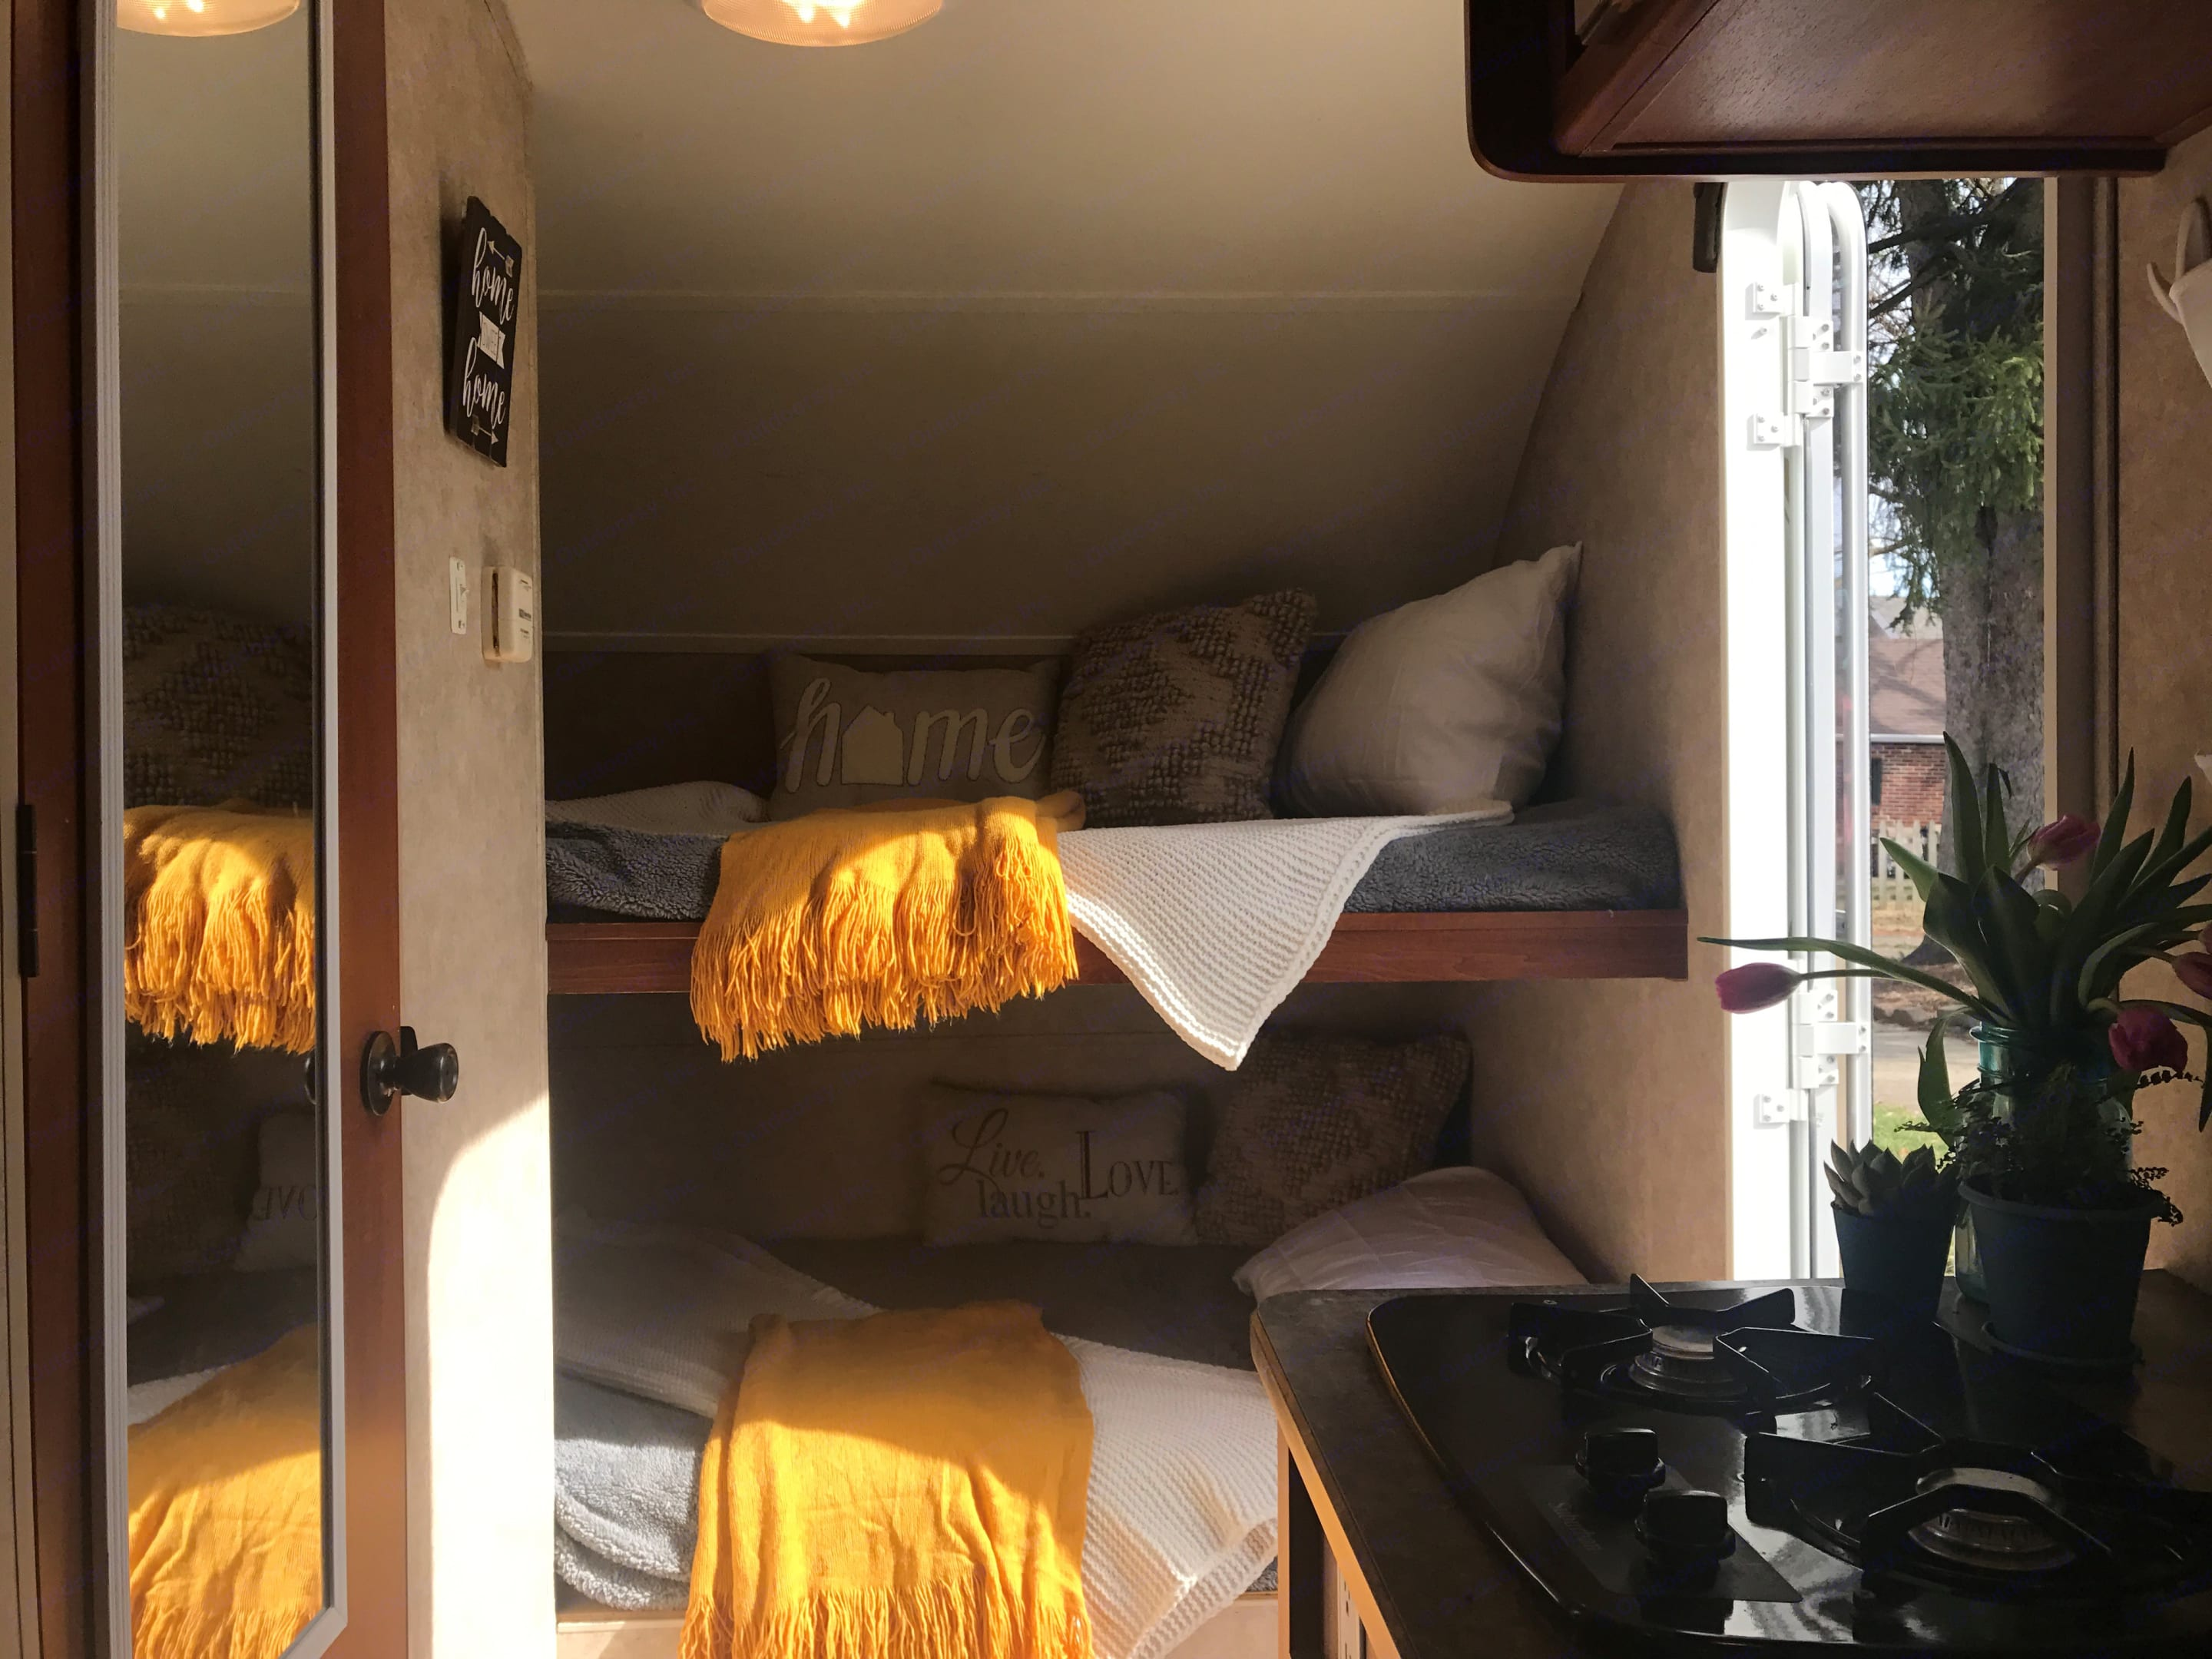 The bunks are very spacious and great for kids or adults. Top bunk holds up to 200 lbs. Each bunk has its own light for reading, etc.... Forest River R-Pod 2009